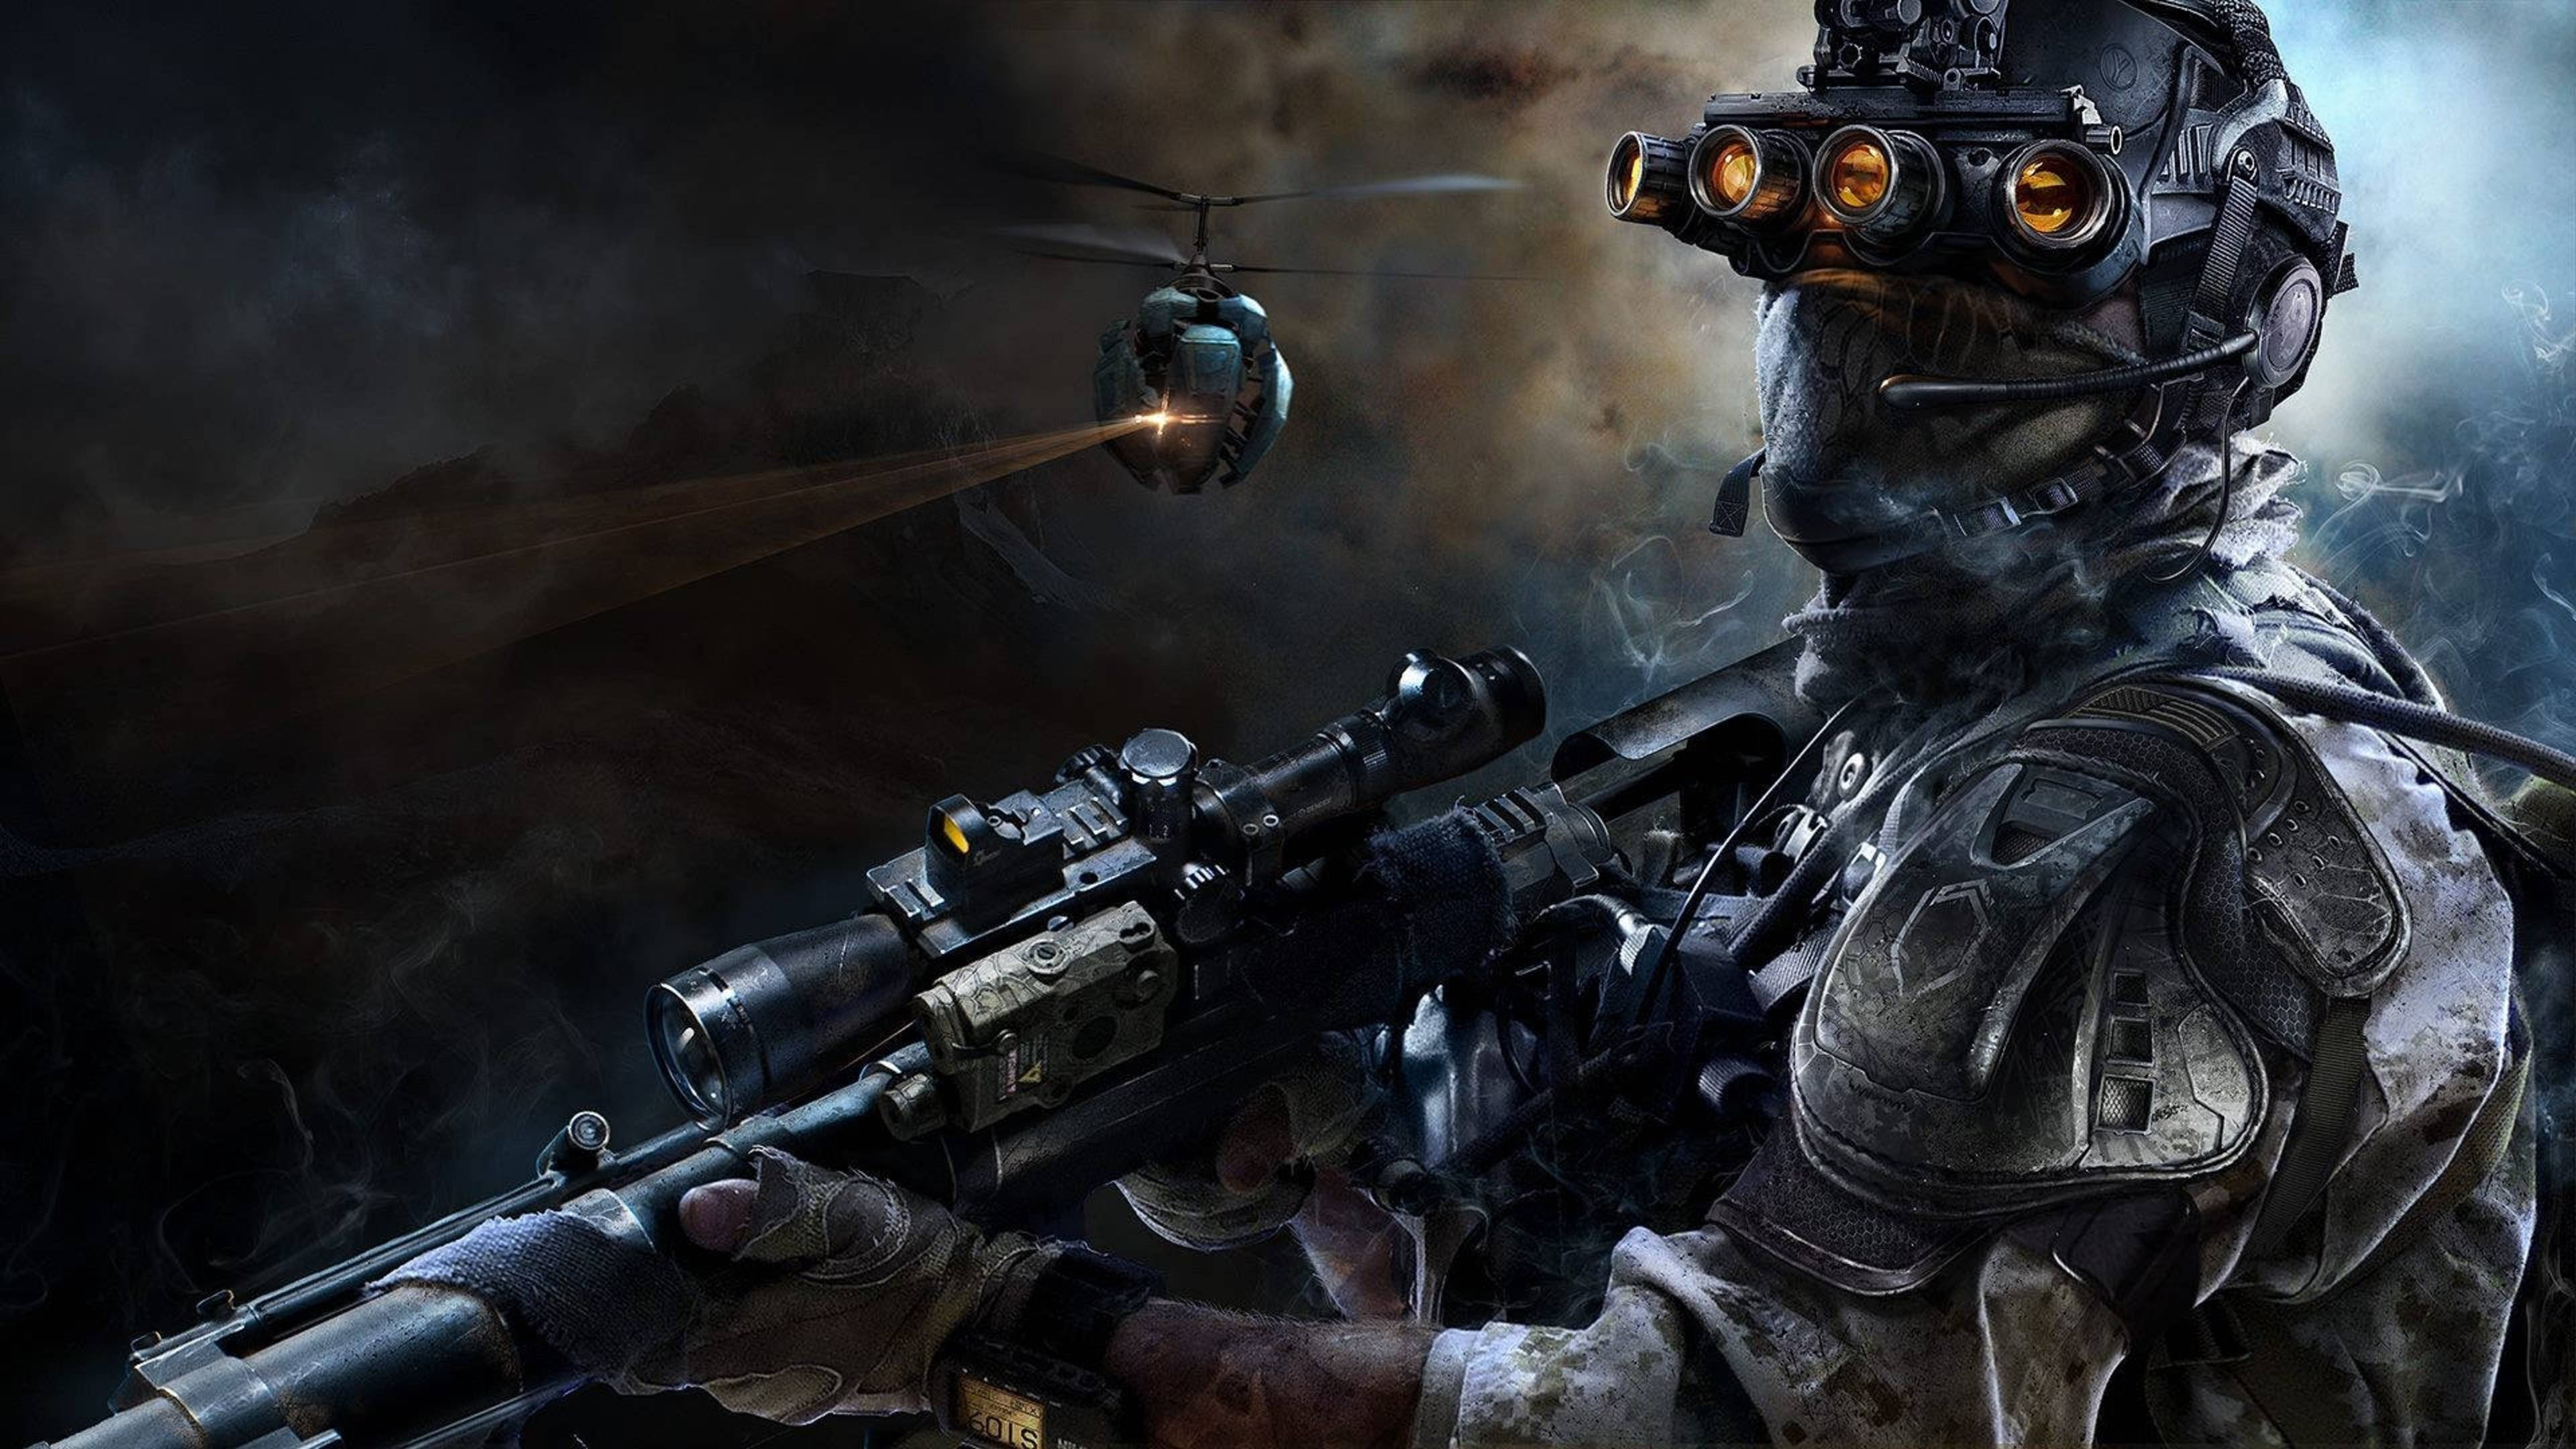 3840x2160 1920x1080 SWAT Wallpaper by Krizved SWAT Wallpaper by Krizved